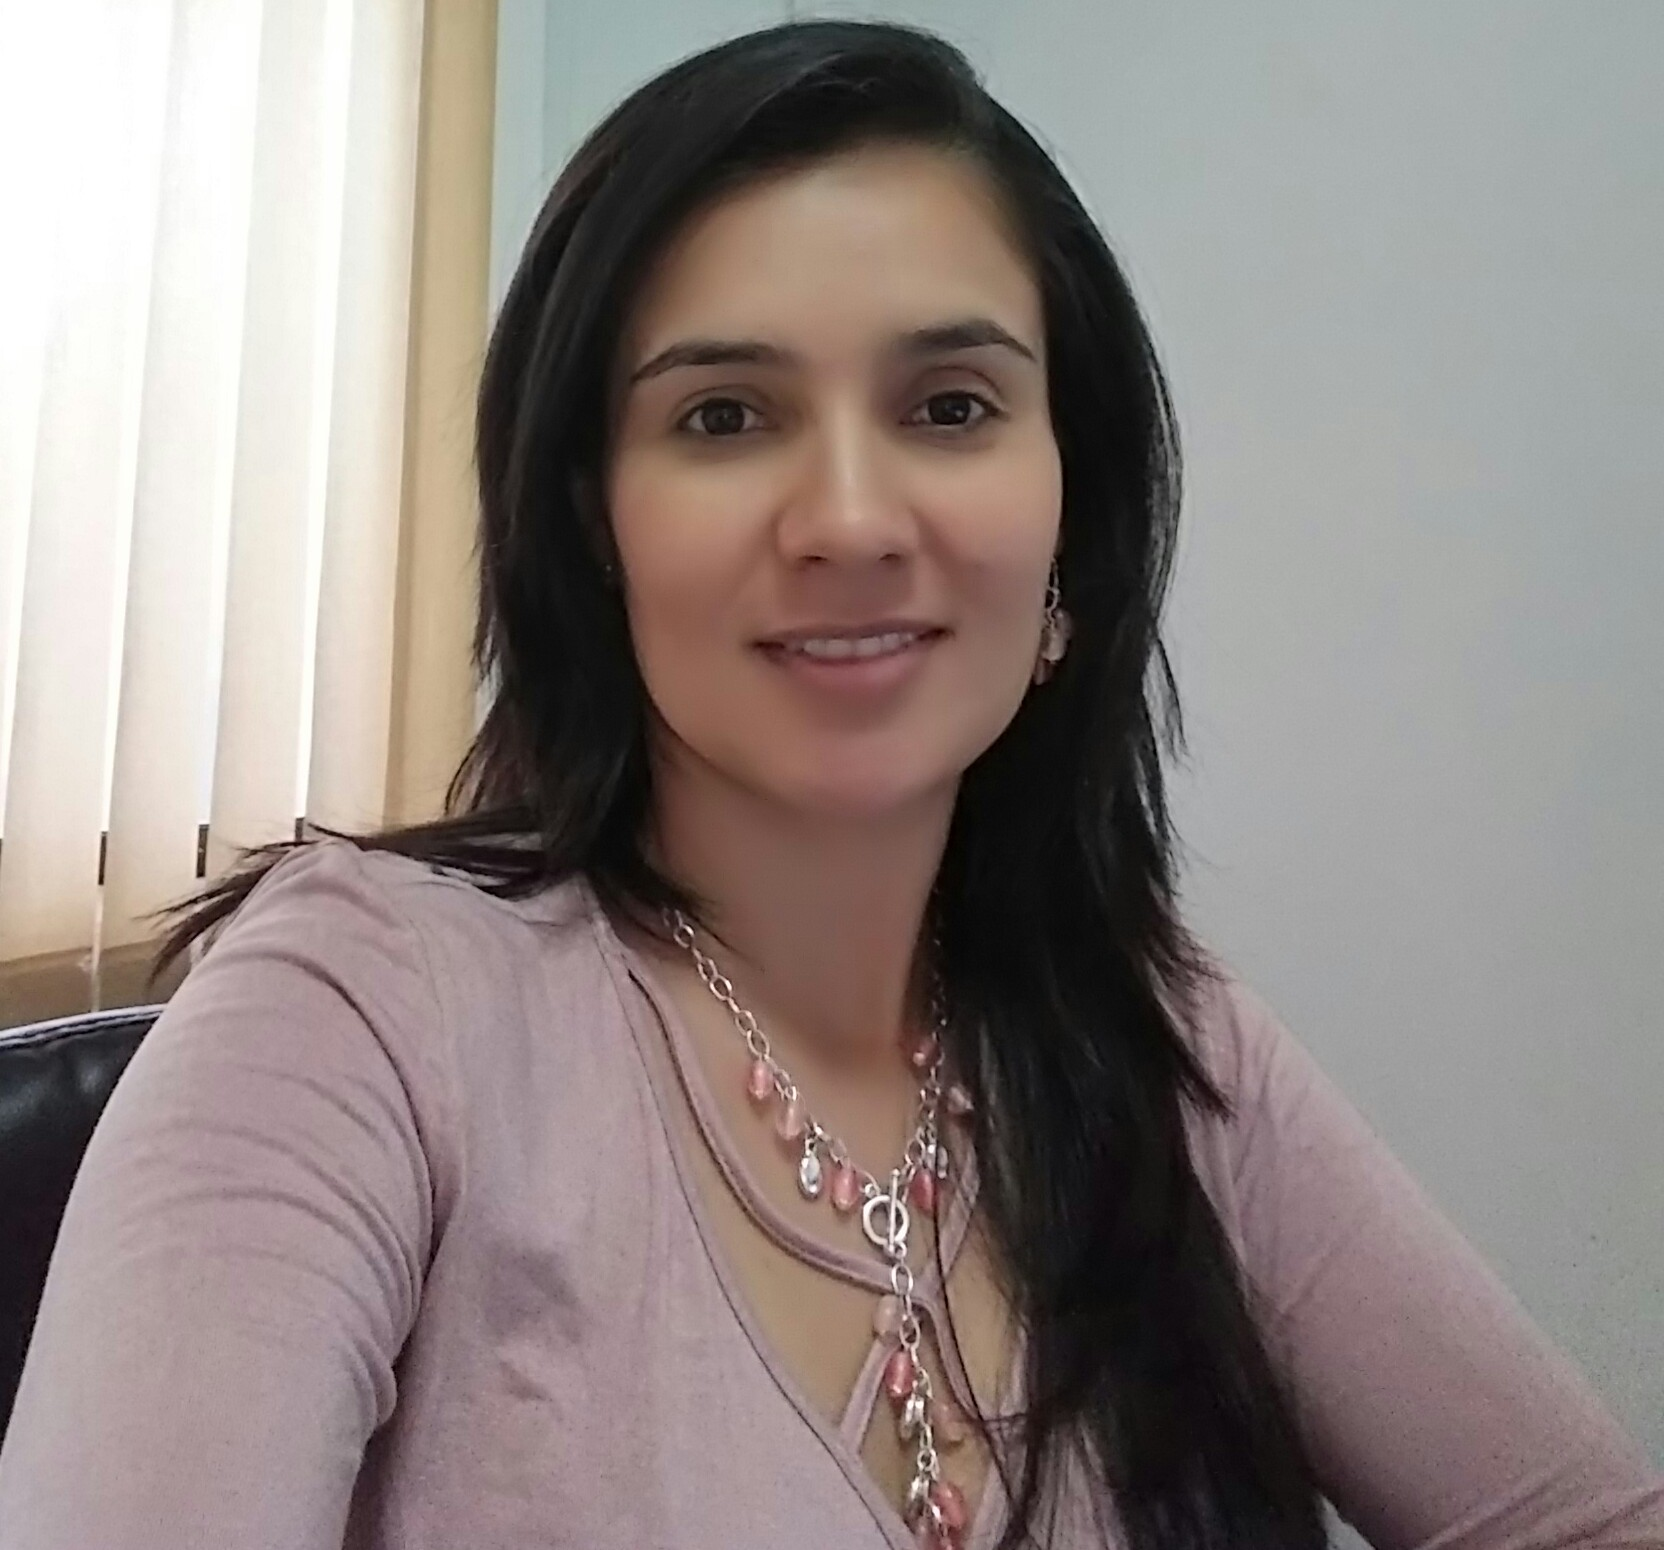 LEIDY PAOLA DUSSAN DUARTE photo